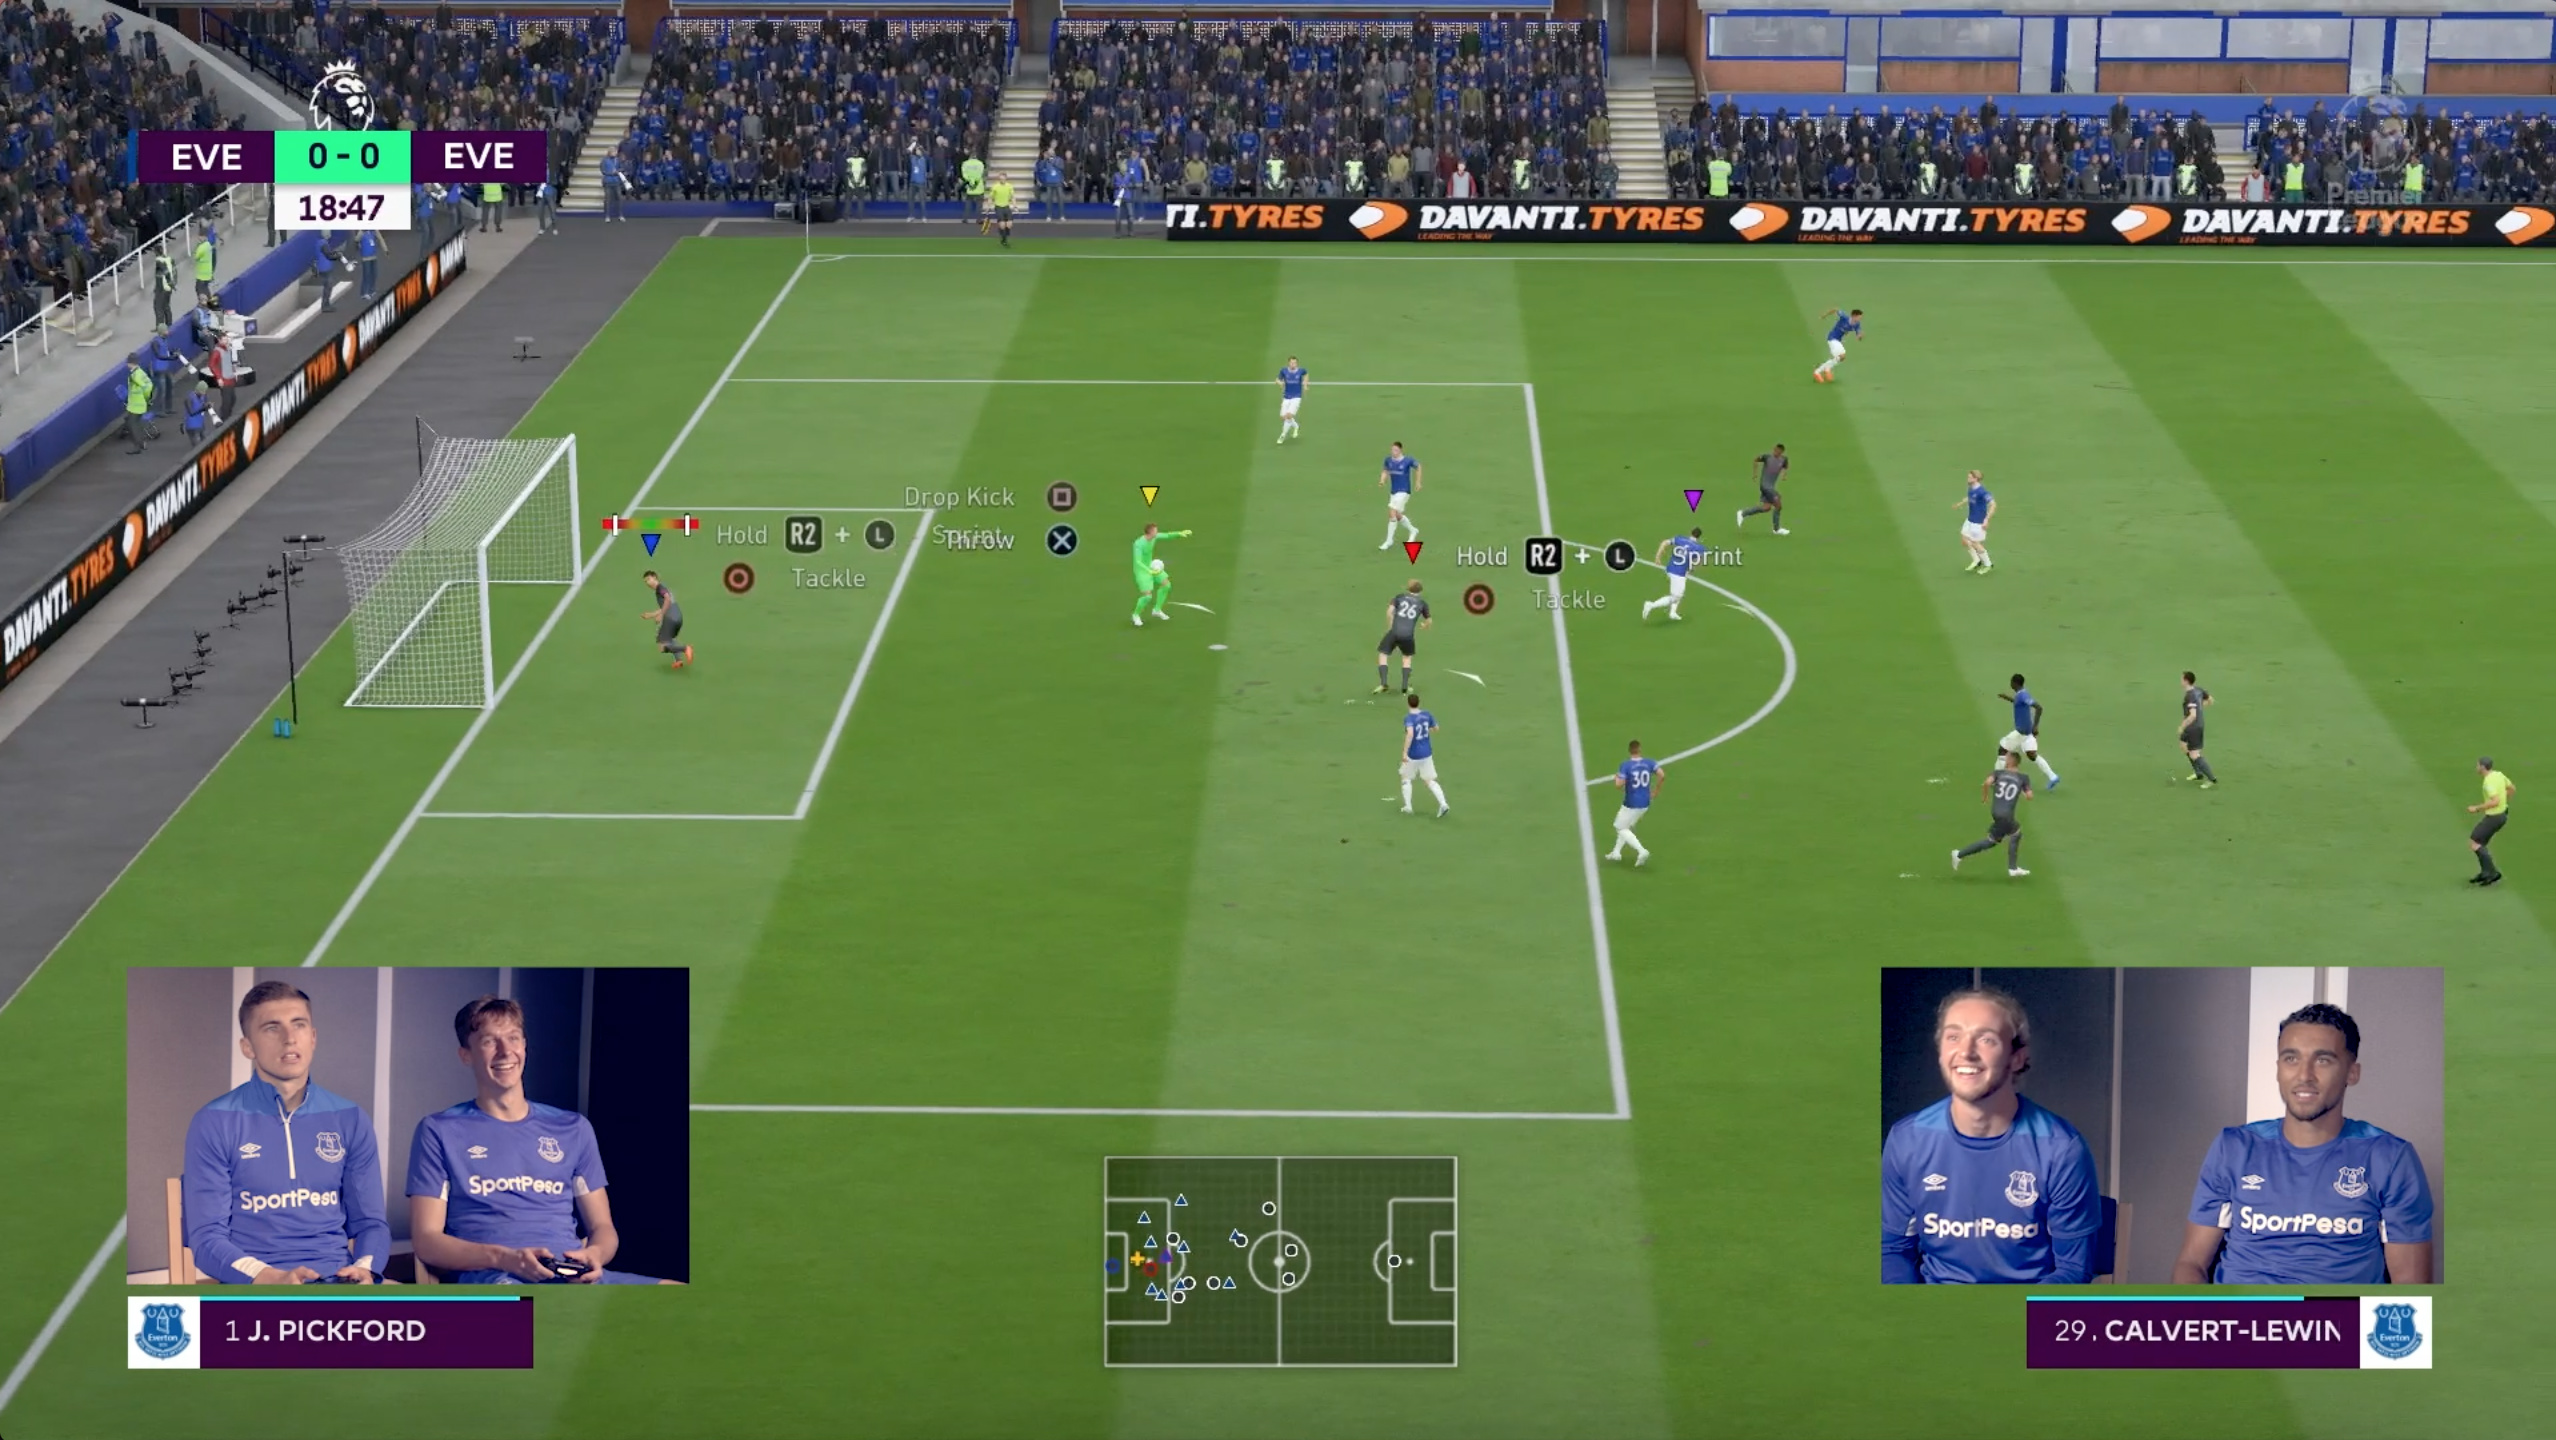 Davanti Highlights Everton Partnership with Video Game FIFA 19